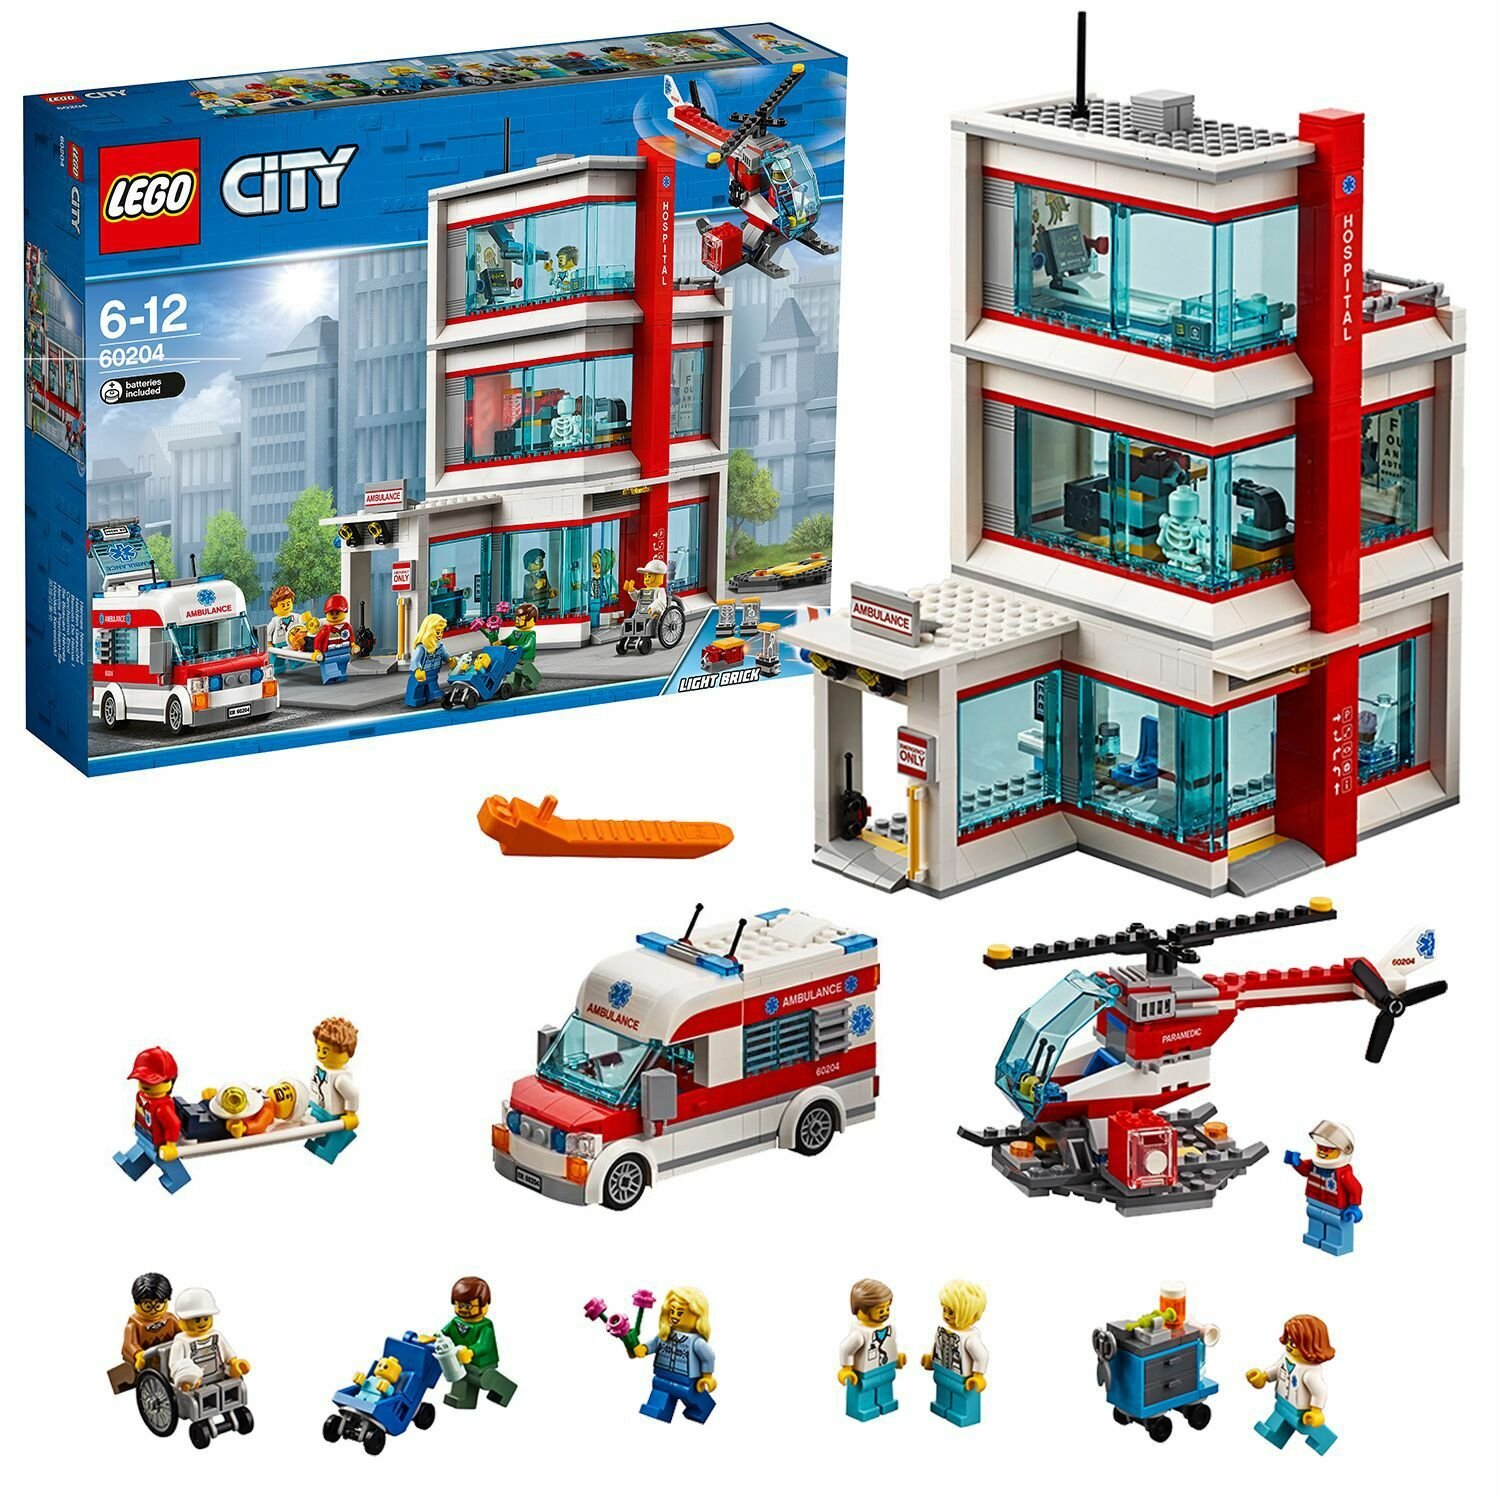 LEGO City Town Hospital Building Set with Light Bricks-60204 from LEGO